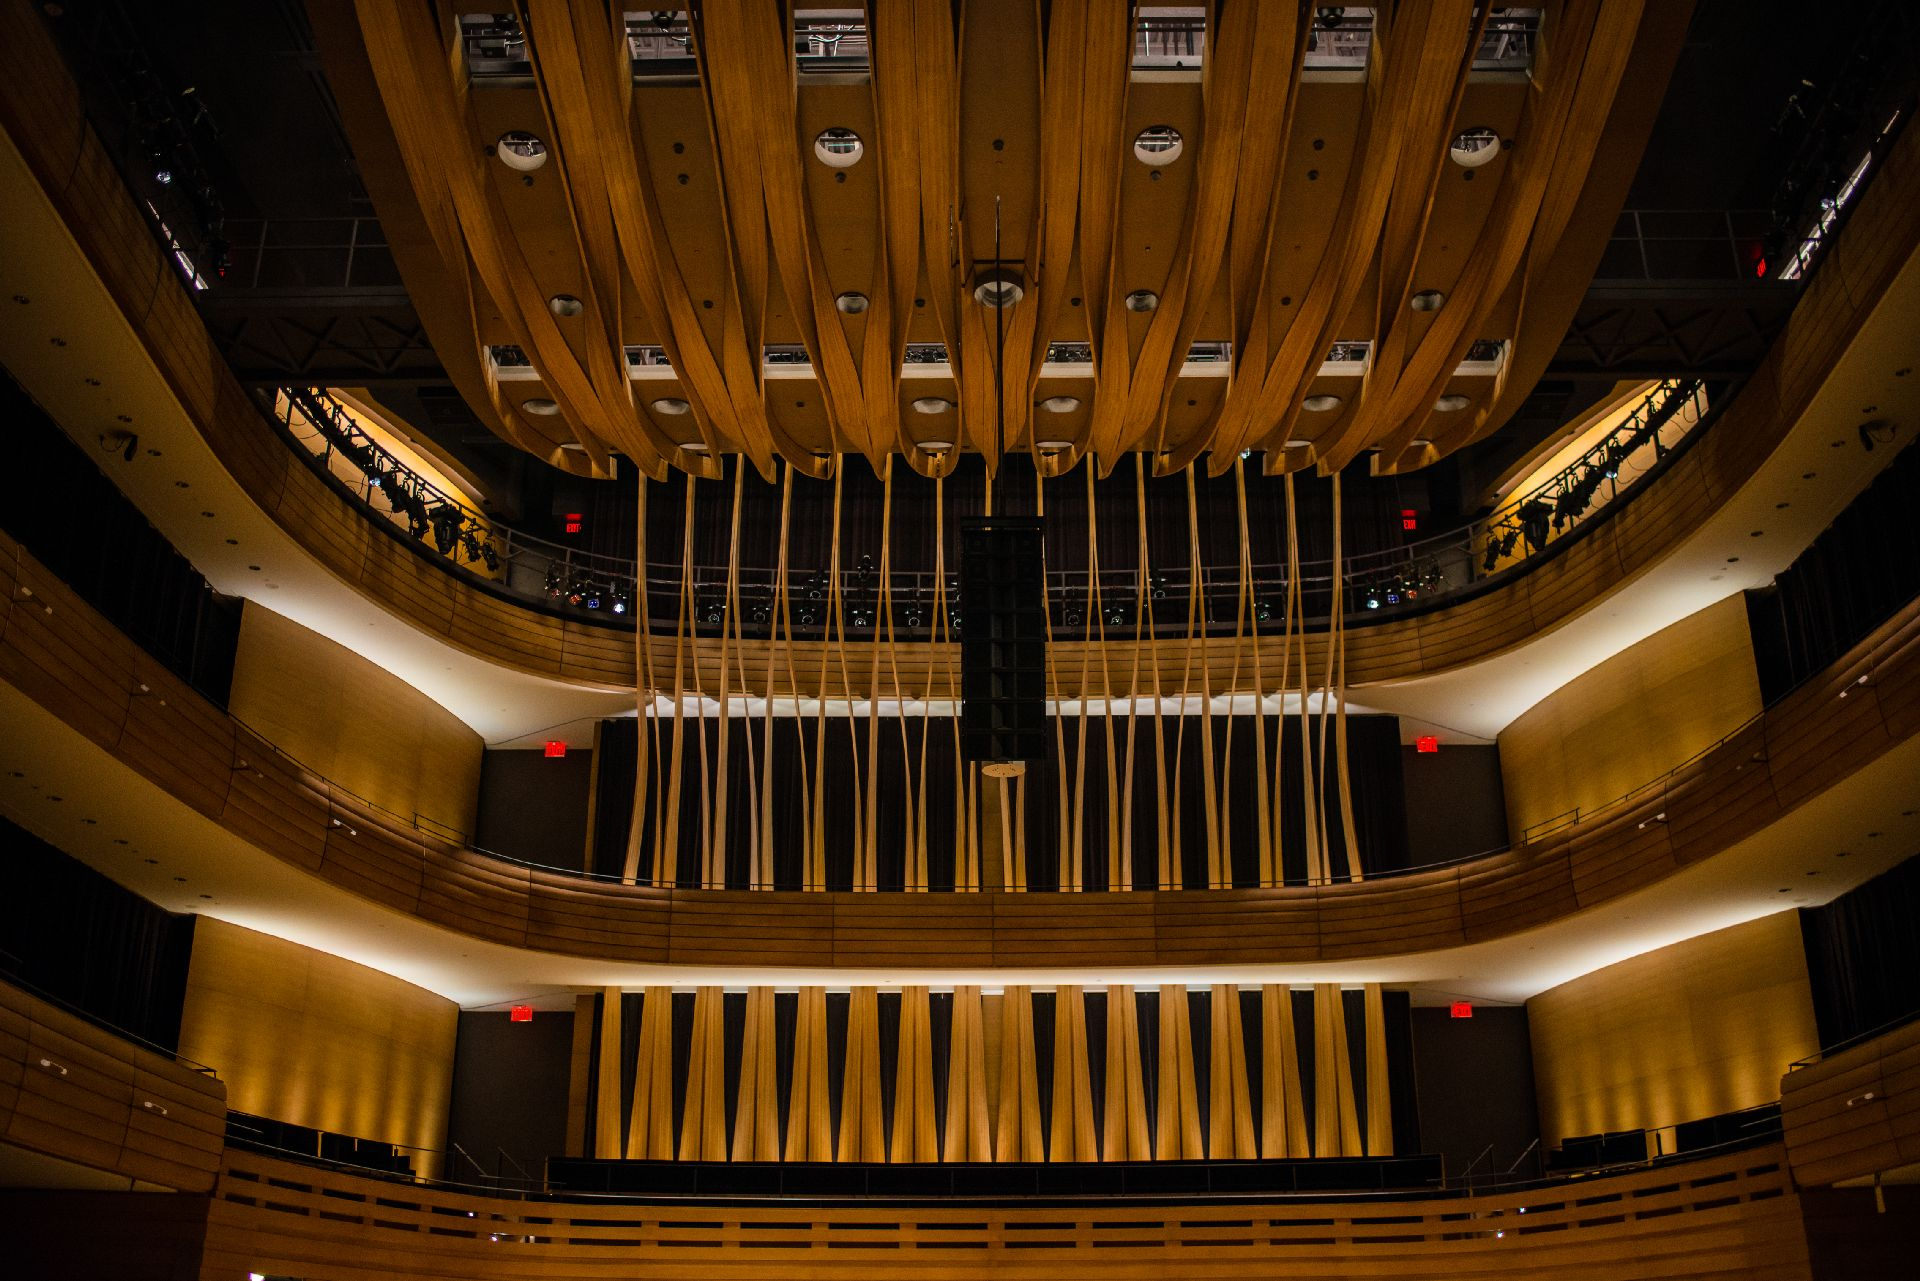 a history of royal conservatory of music • the royal conservatory music development program promotes and expands musical activity in the united states and makes the study of music a central part of the lives of all americans visit rcmusicca to learn more about the history of the royal conservatory read about the college of examiners, including examiner biographies.